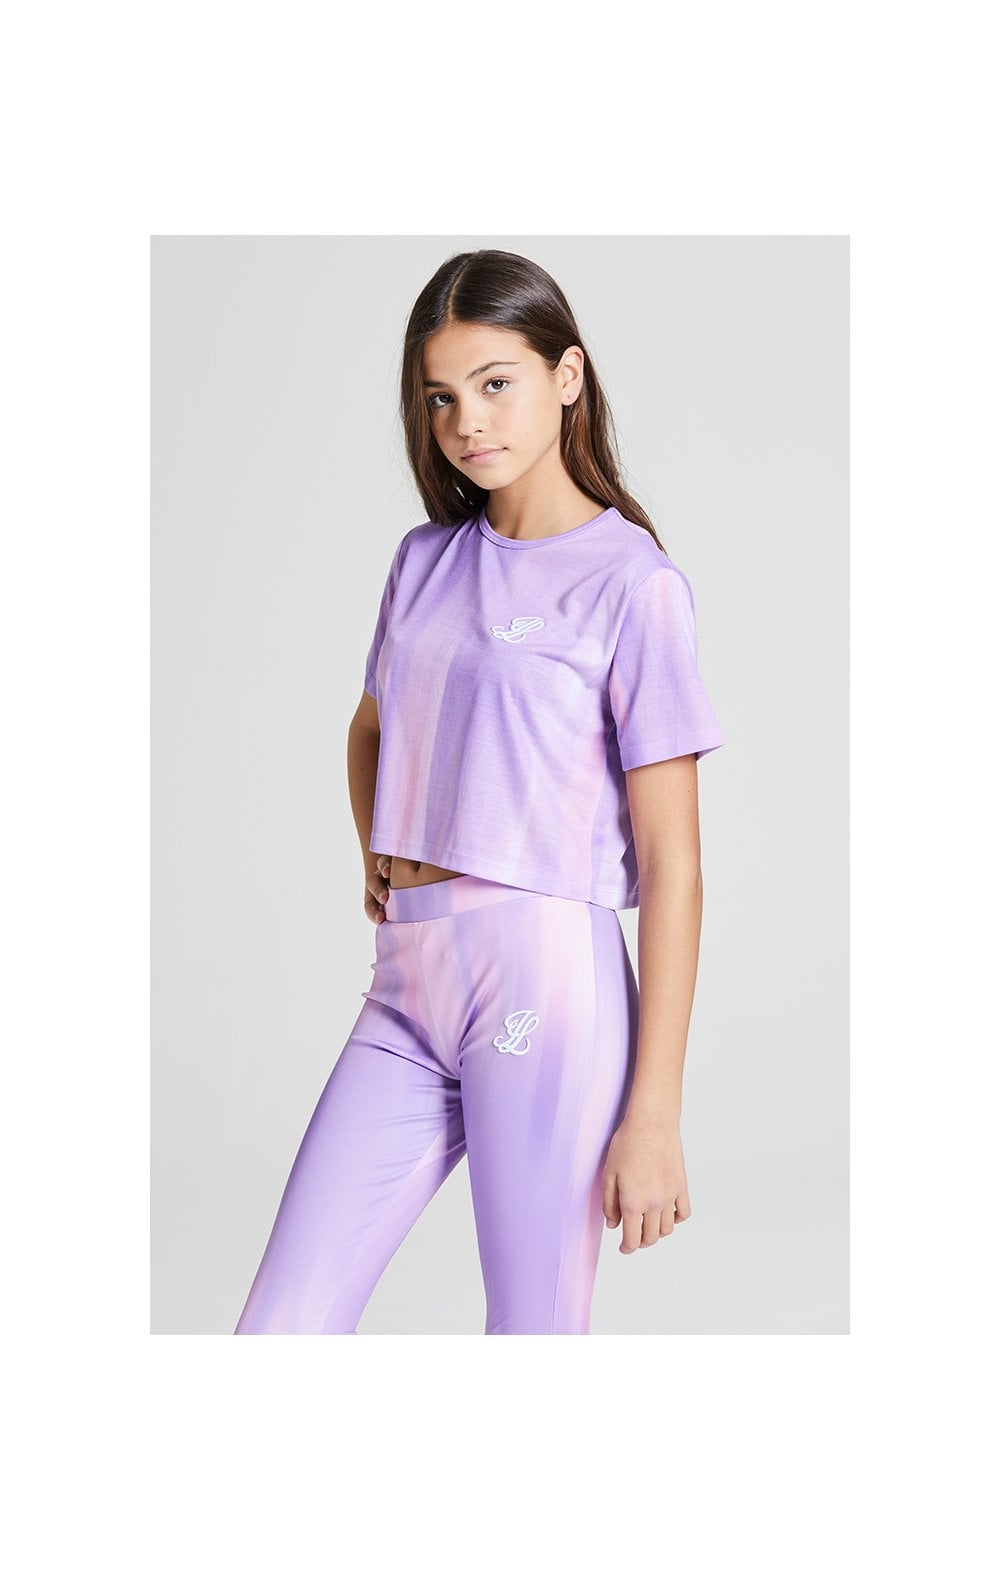 Illusive London Cropped Marble Tee - Lilac & Marble (2)